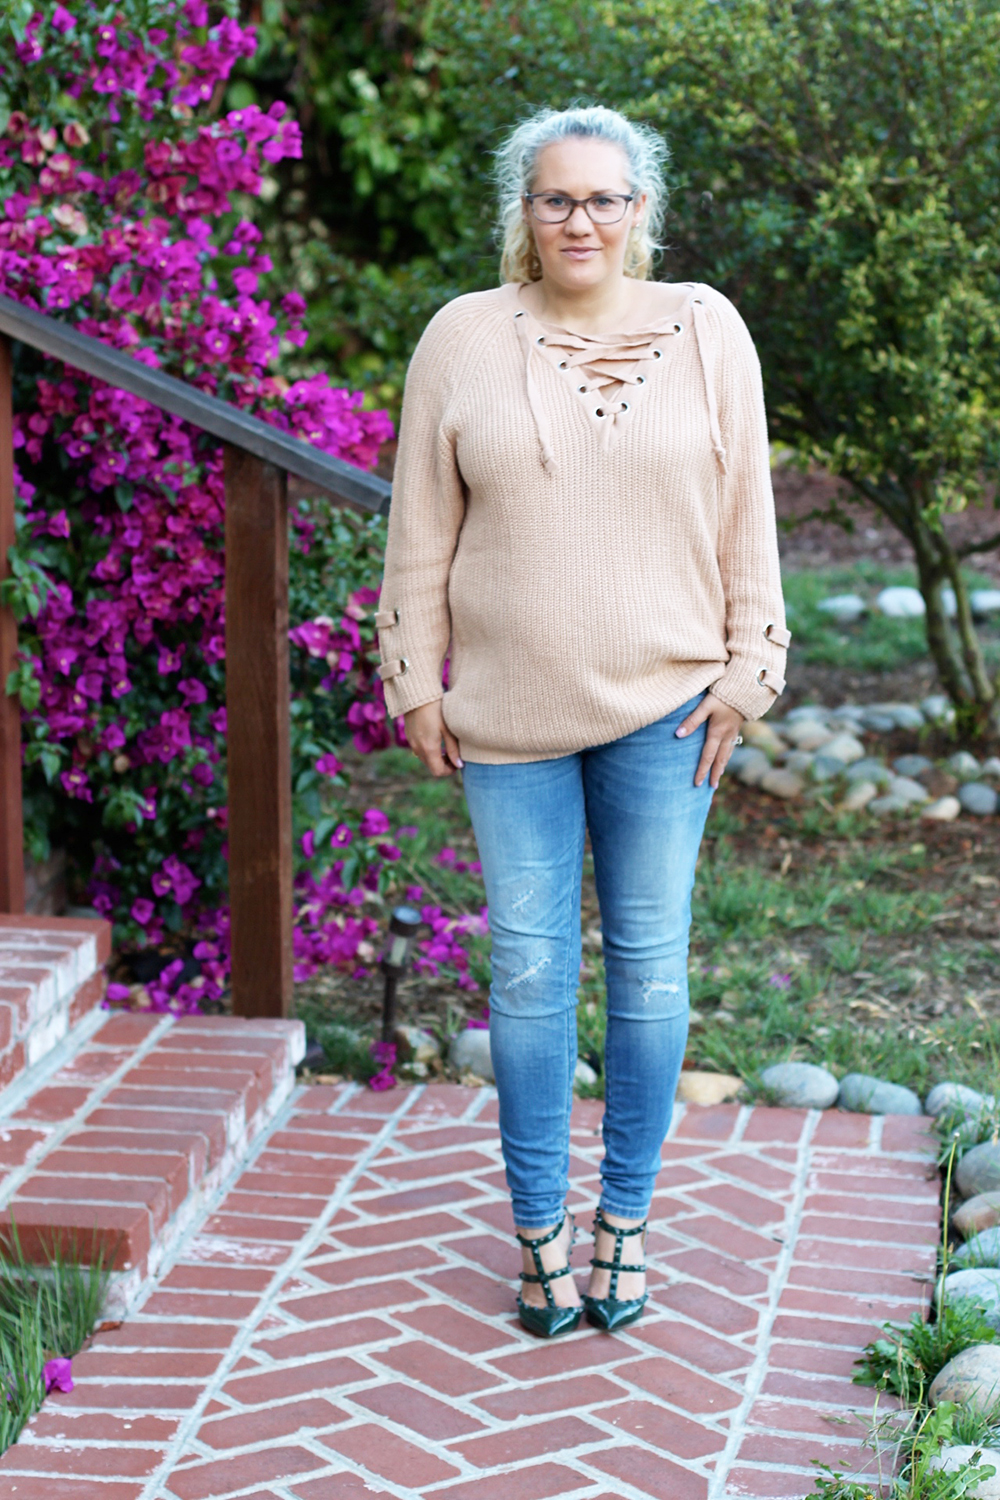 lace-up-sweater-chicwish-outfit-inspiration-mom-style-fashion-blogger-have-need-want-3